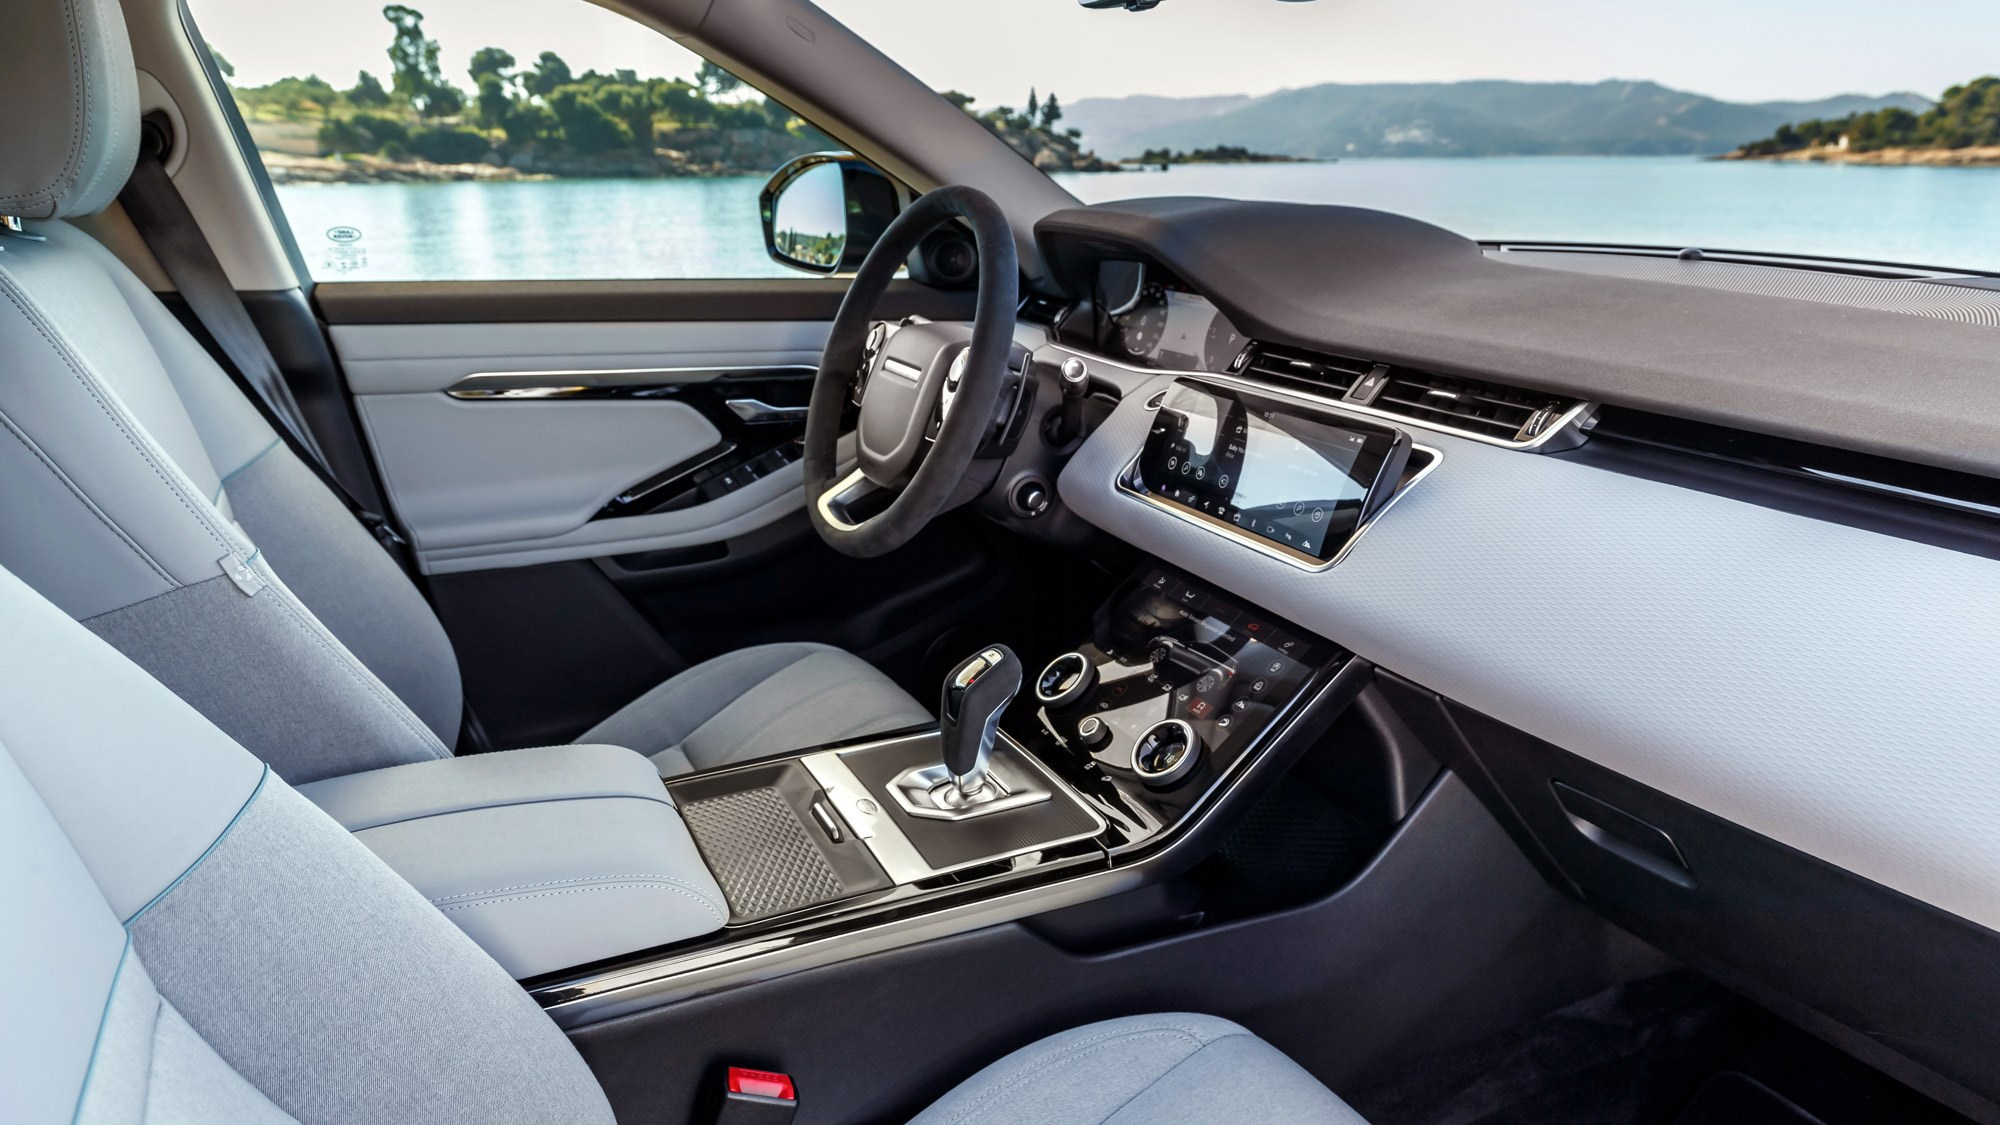 Range Rover Evoque interior: A huge quality uplift over its predecessor